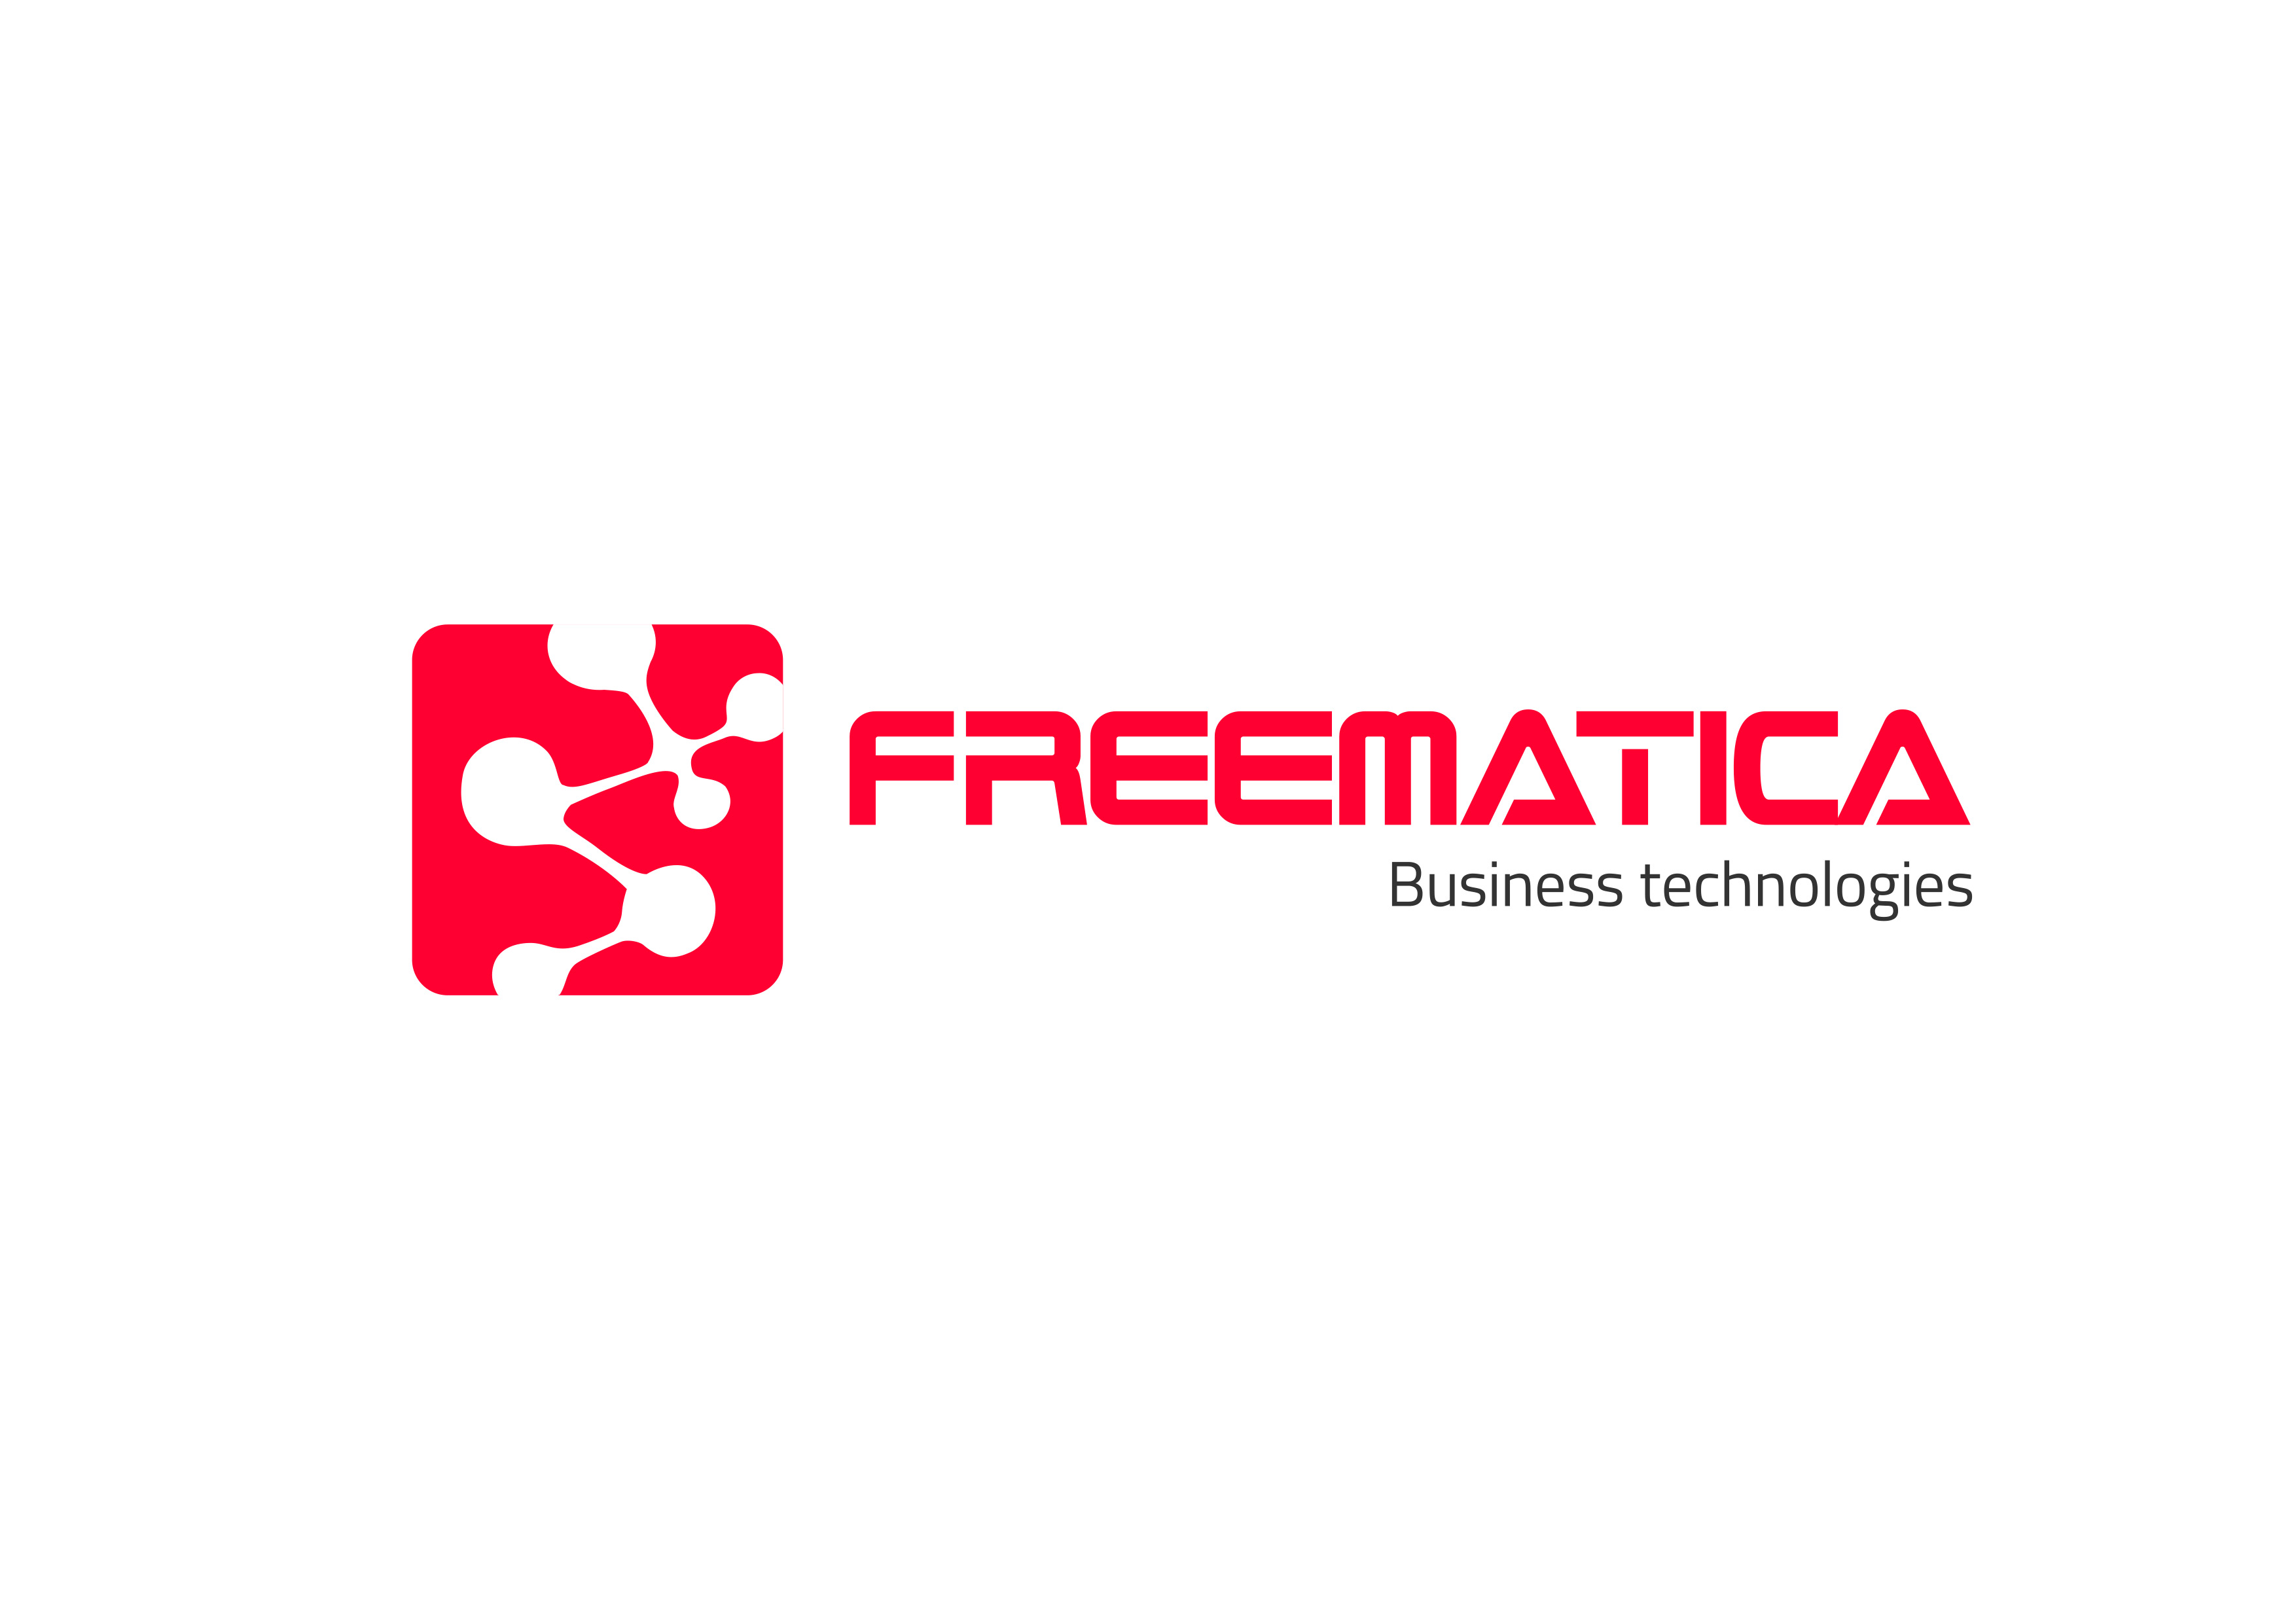 Freematica. Business technologies